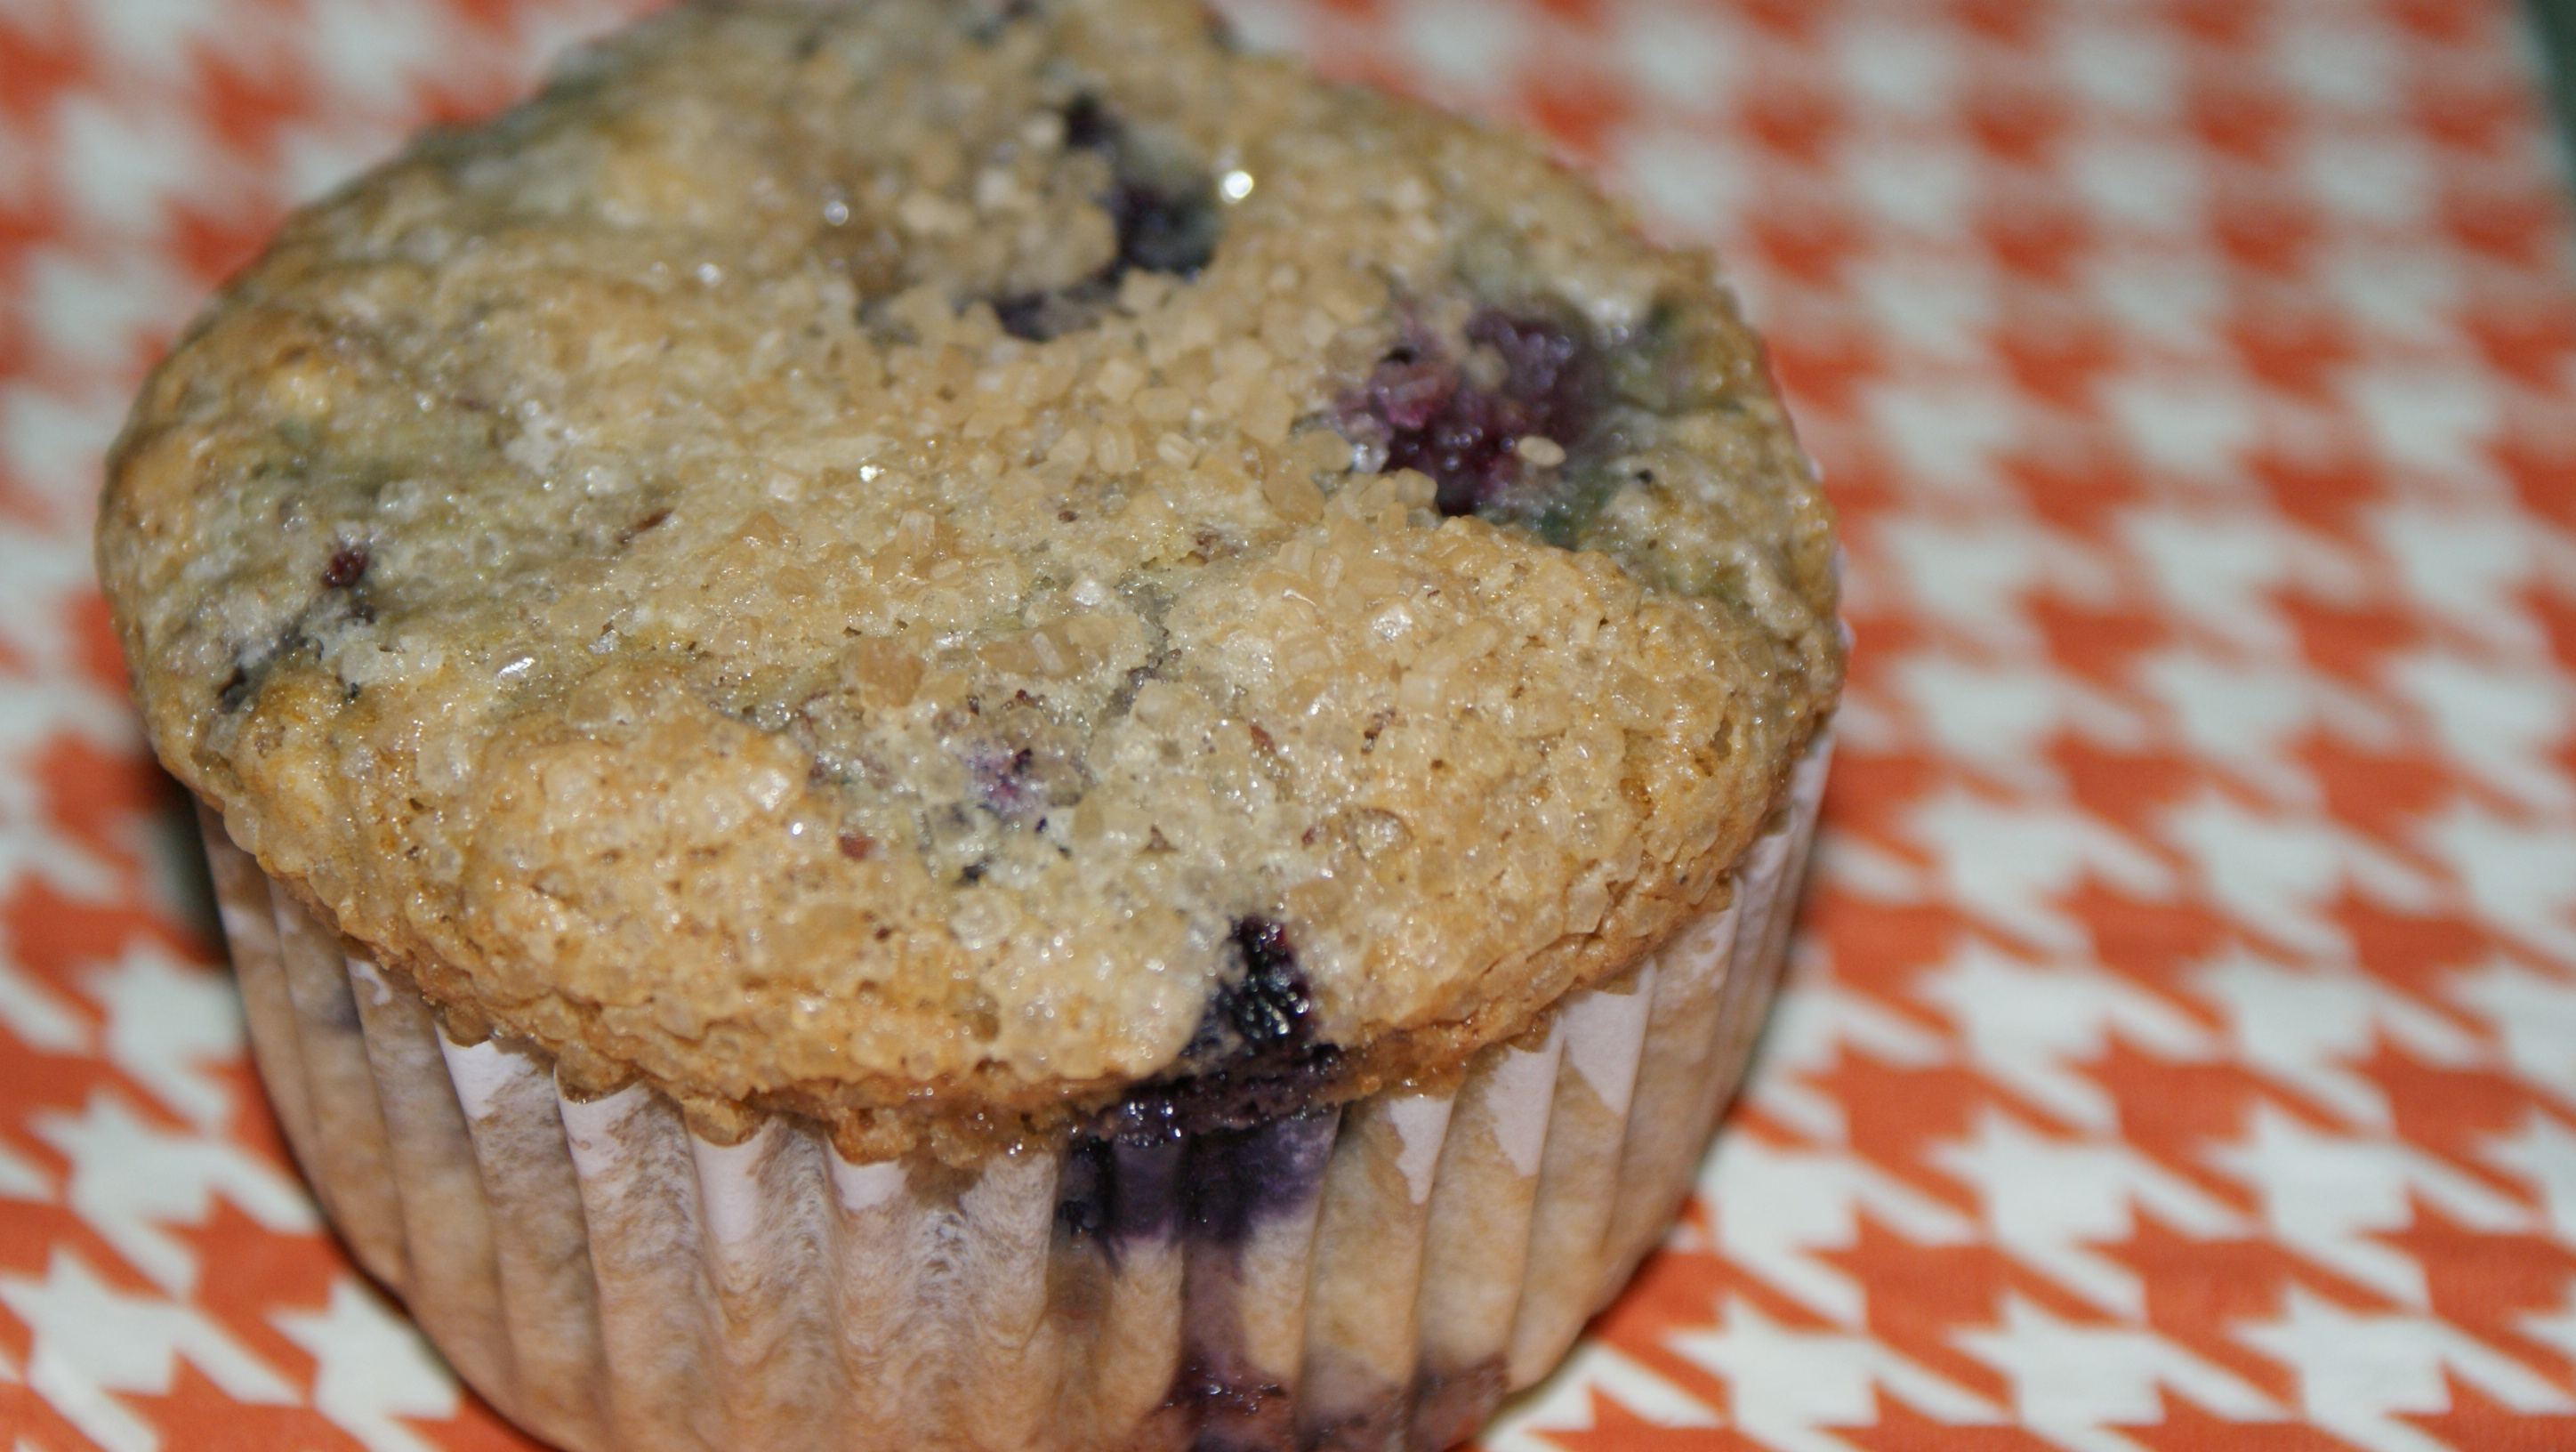 Low Fat Blueberry Muffins with Oats, Almonds and Flax